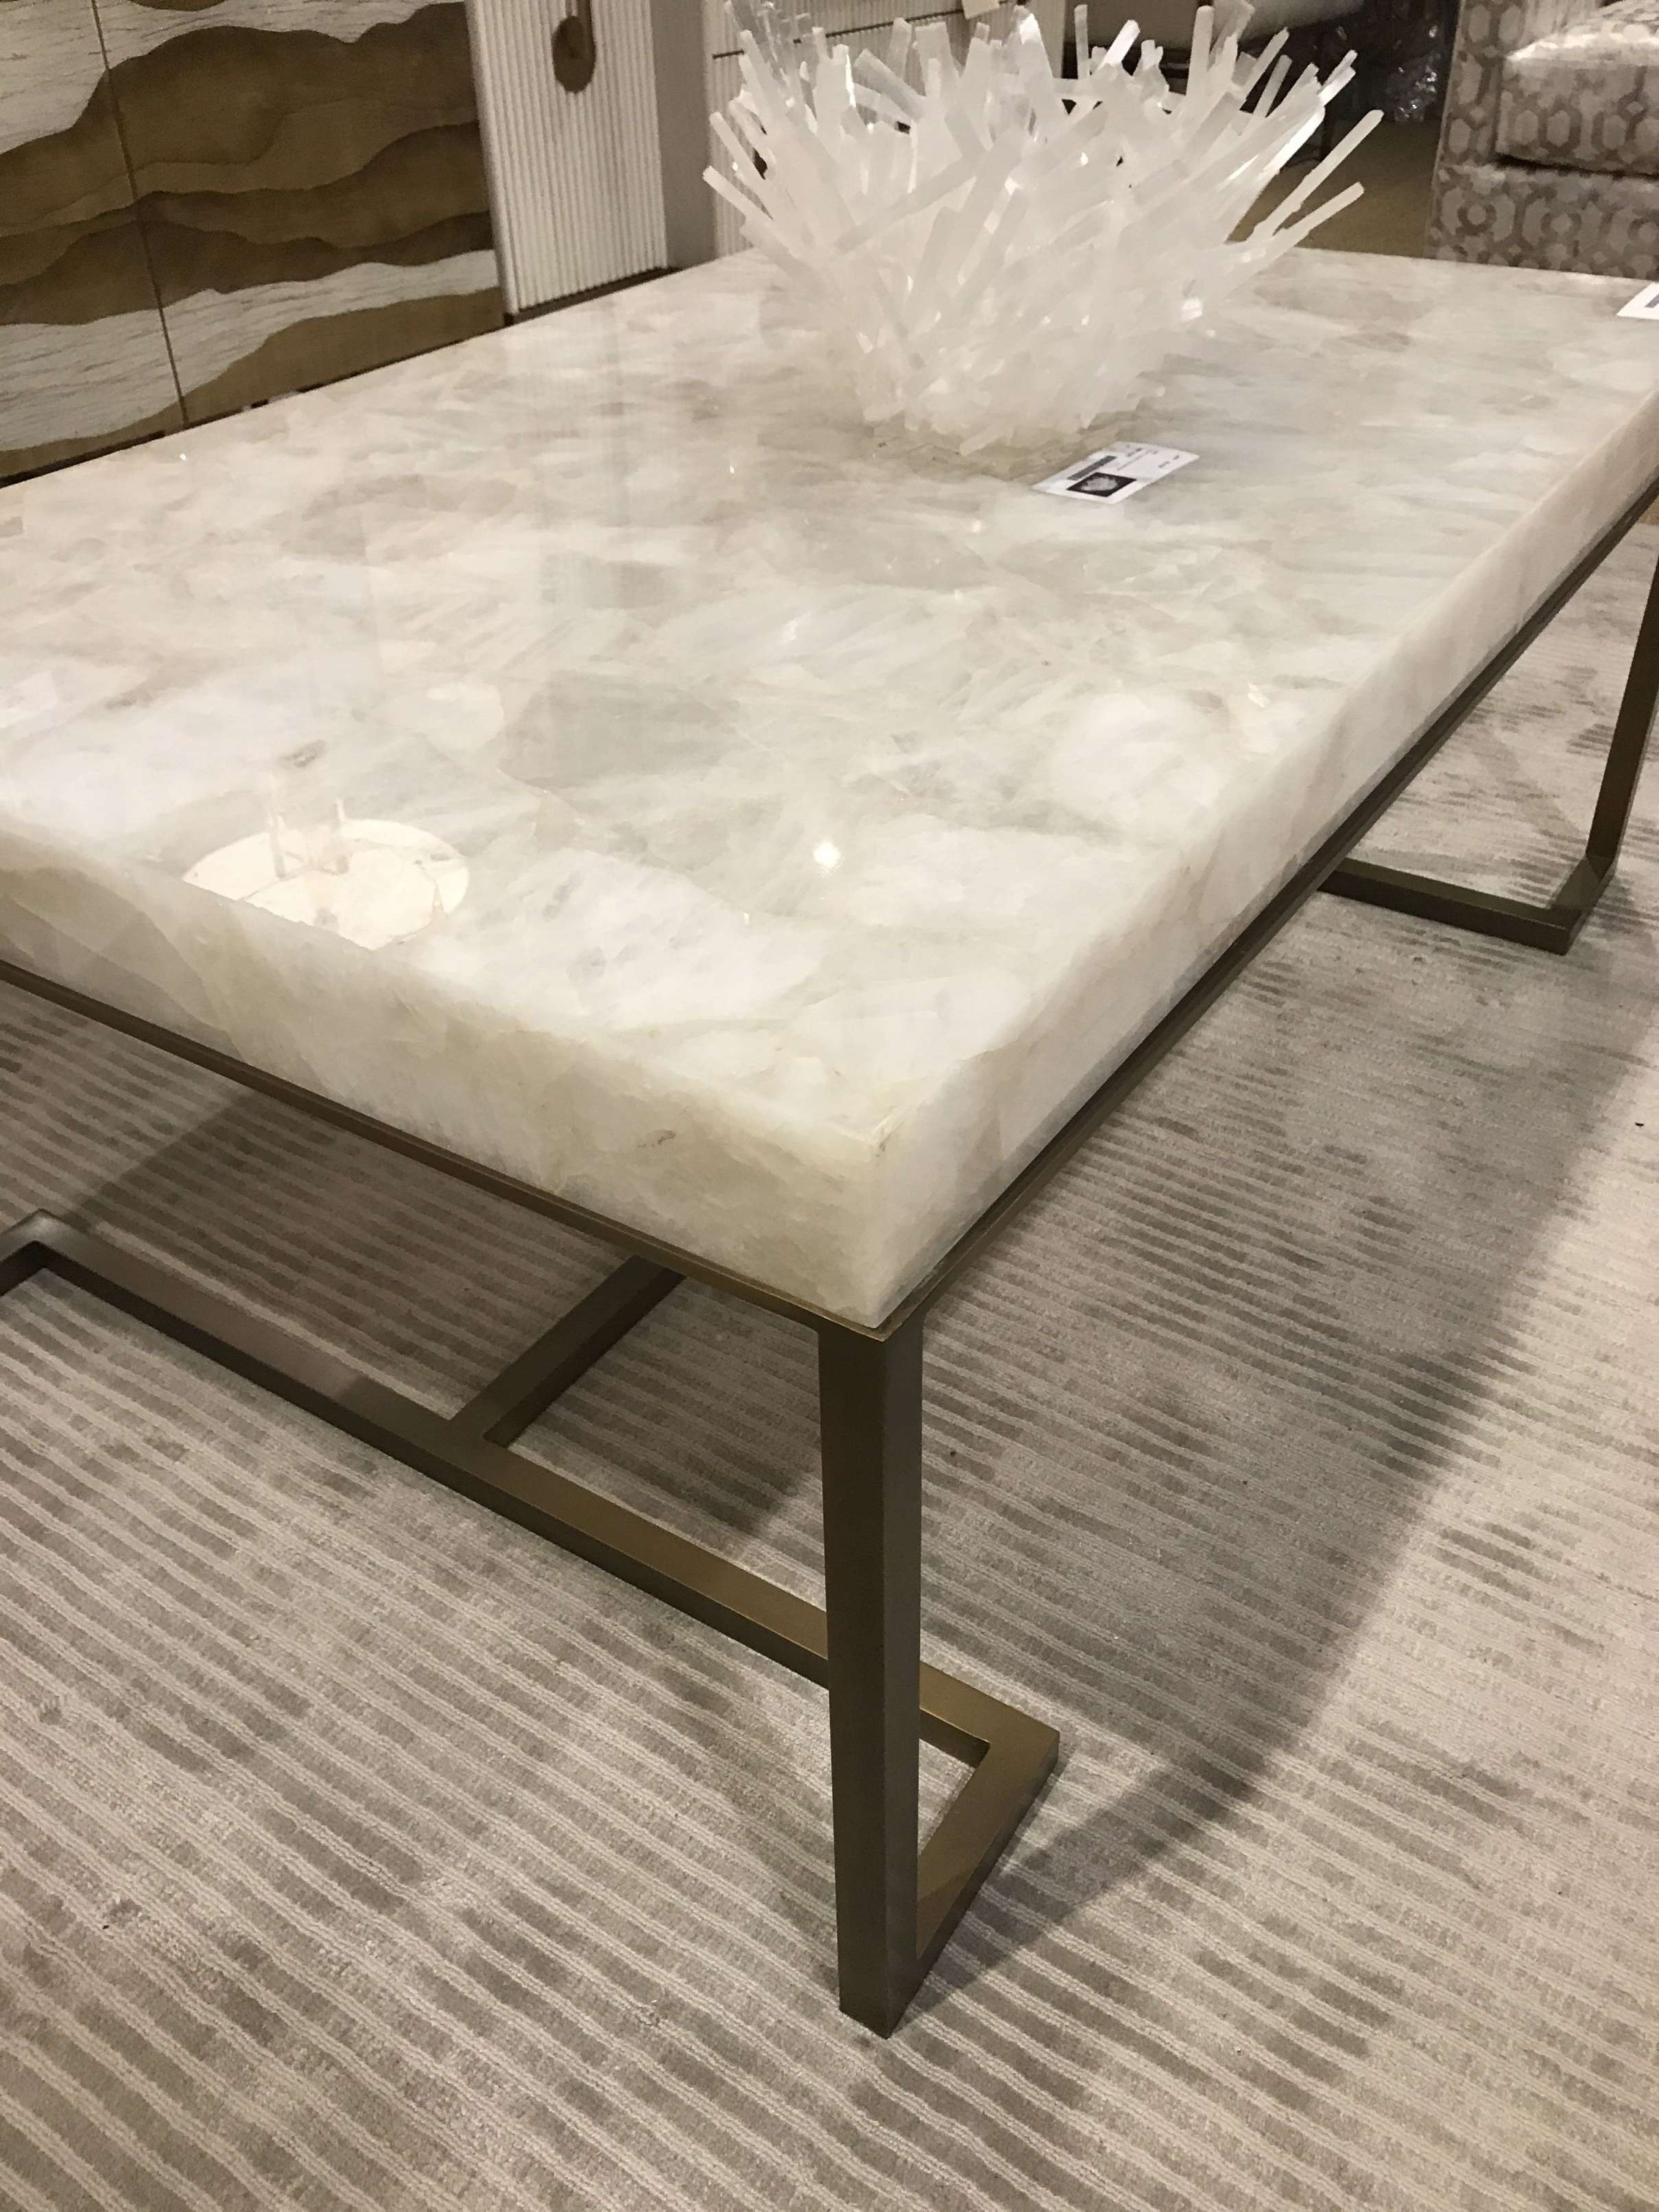 20 Best Collection Of Marble And Glass Coffee Table